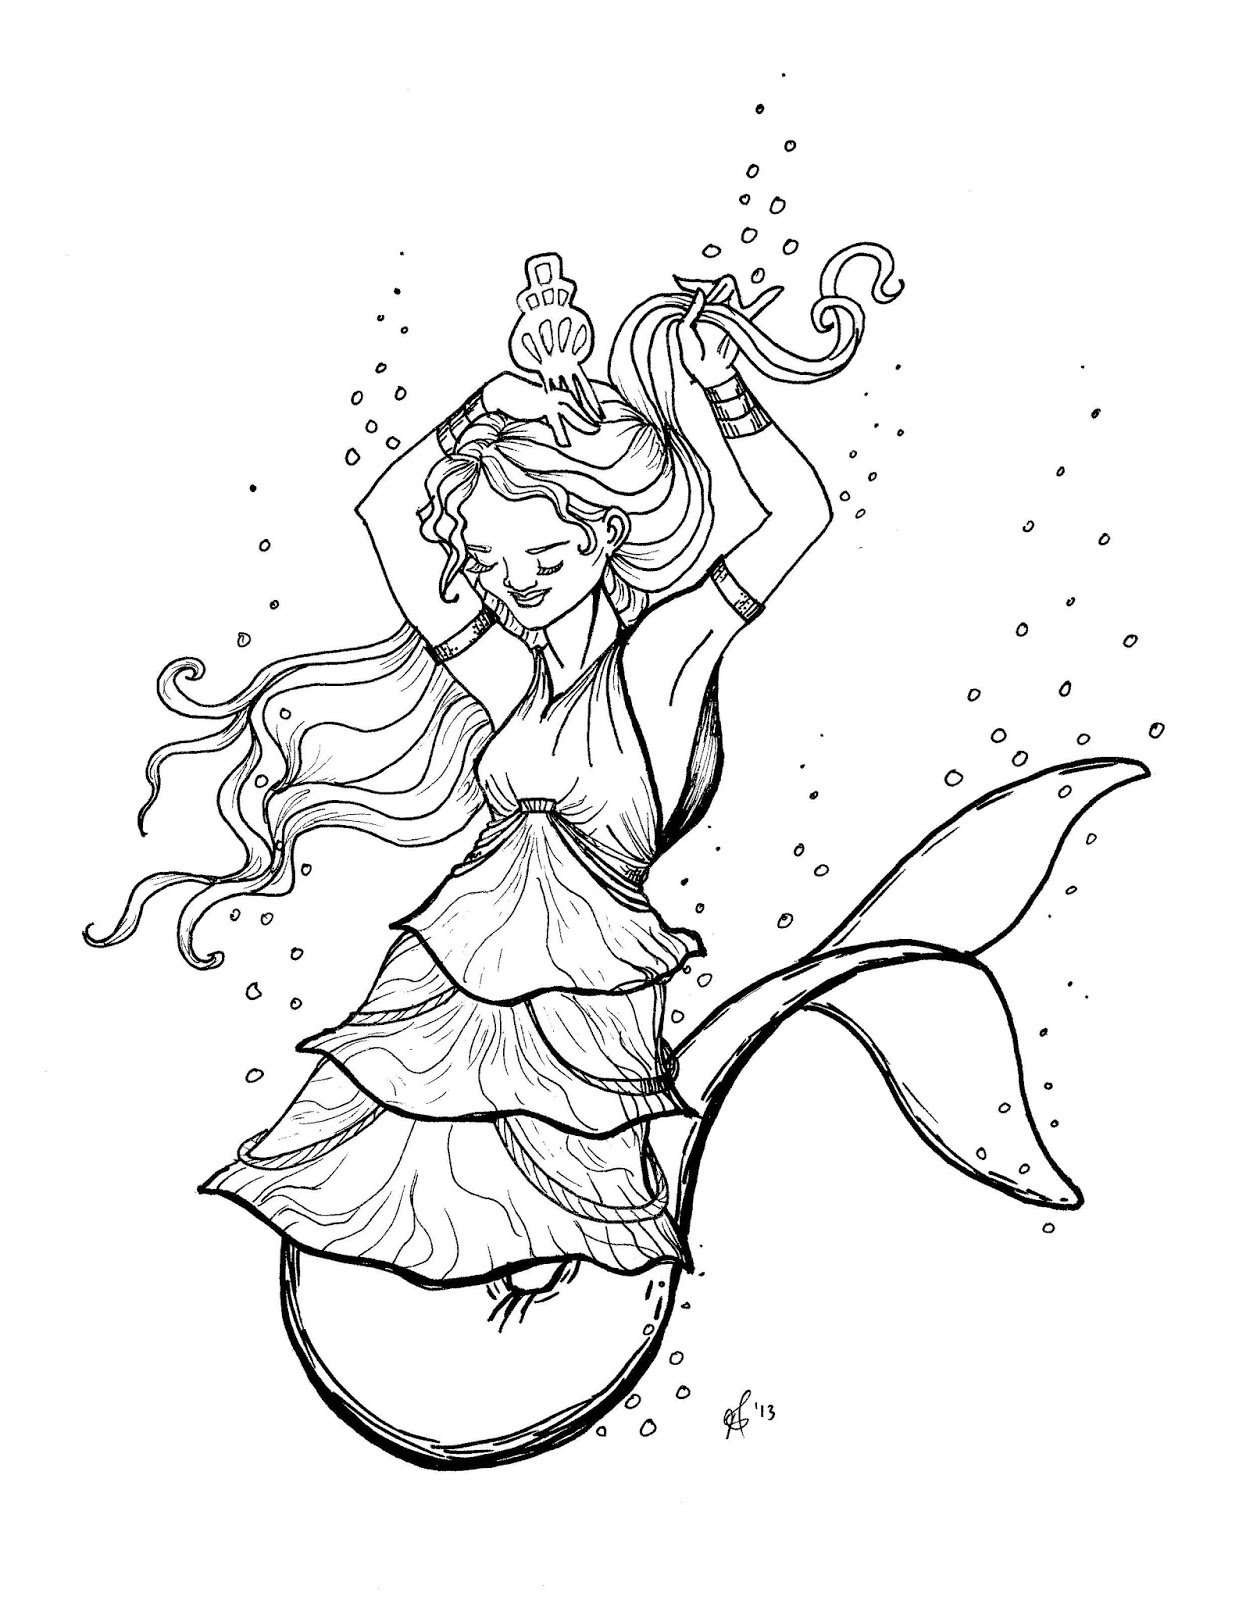 free Original Coloring Pages Mermaid Dolphin Tail tiered dress